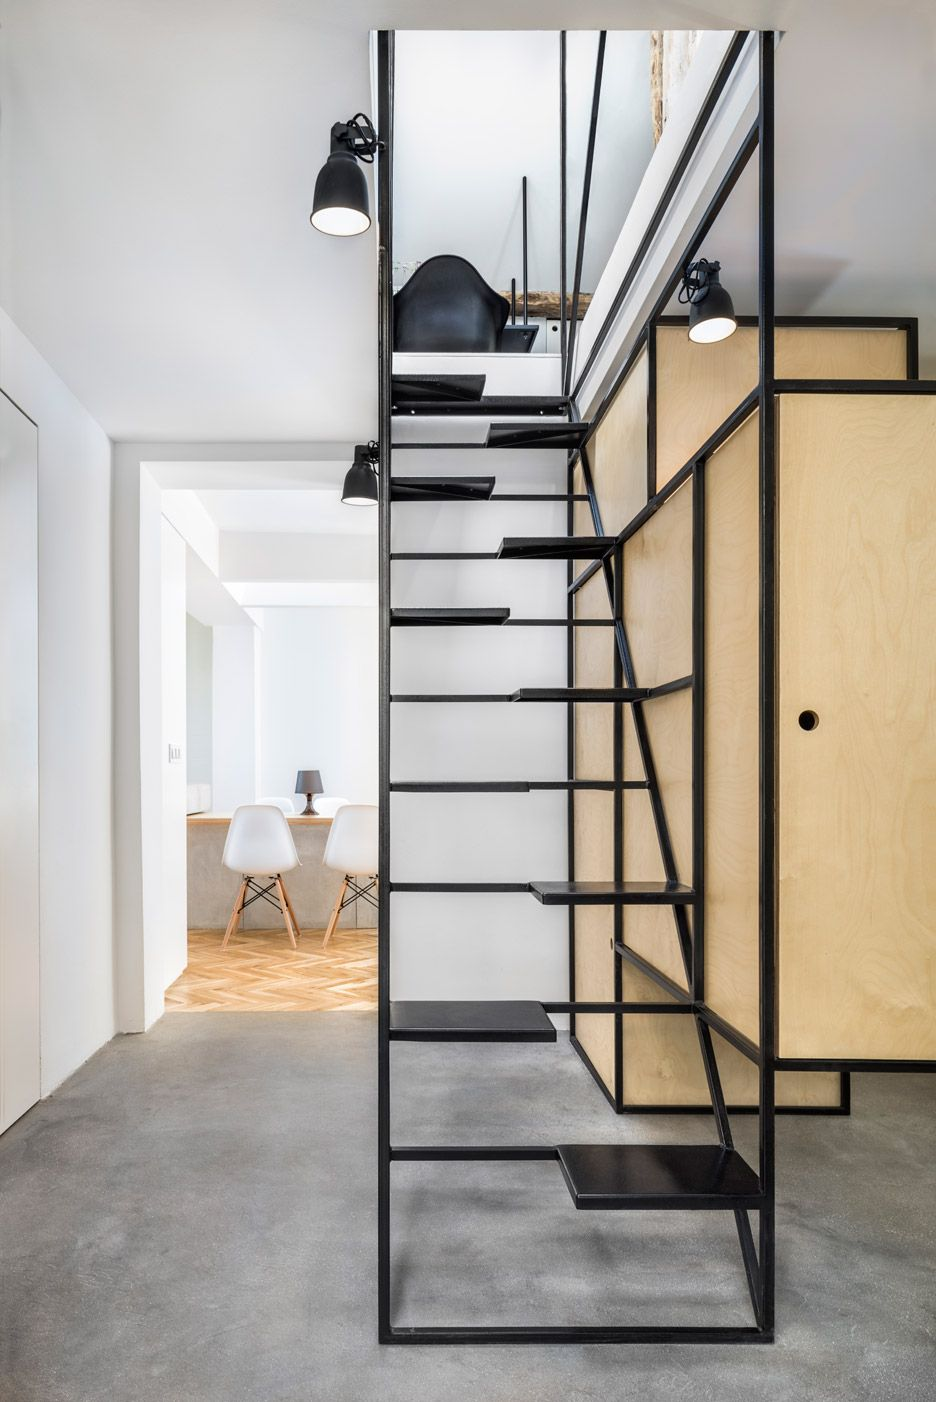 Dontdiy Installs Black Wireframe Staircase Inside House And